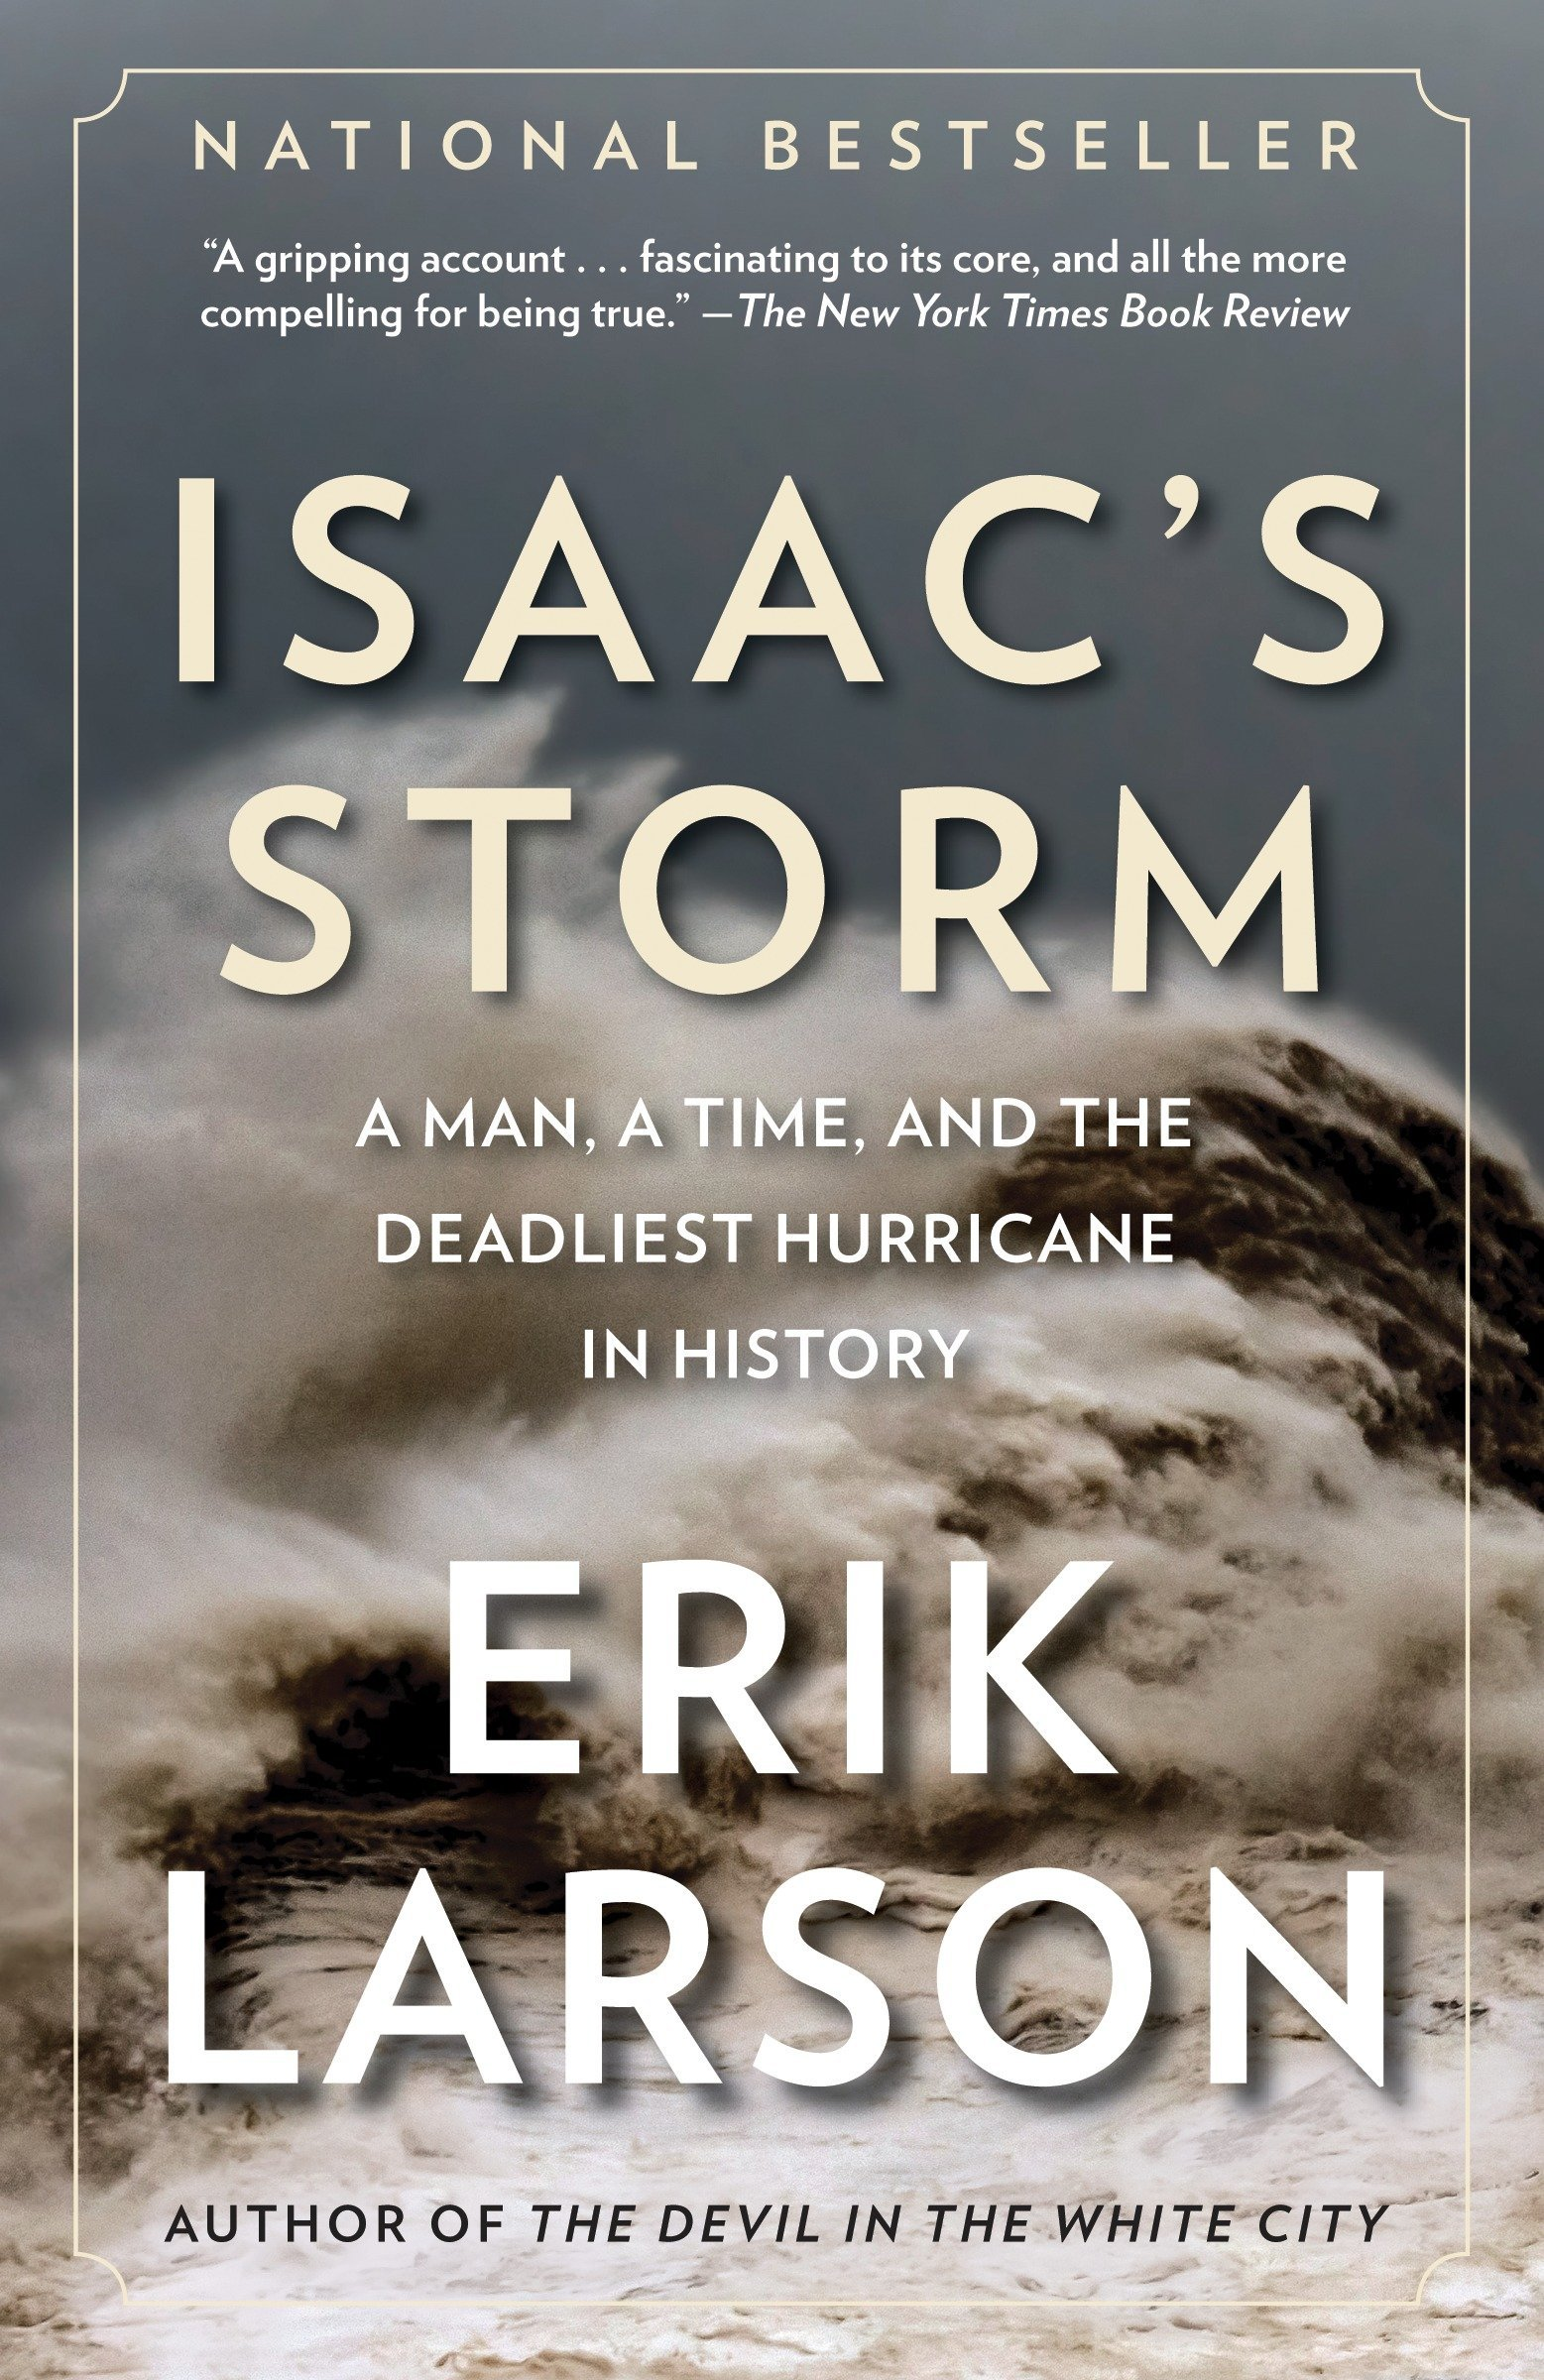 Isaacs Storm: A Man, a Time, and the Deadliest Hurricane in History: Amazon.es: Erik Larson: Libros en idiomas extranjeros